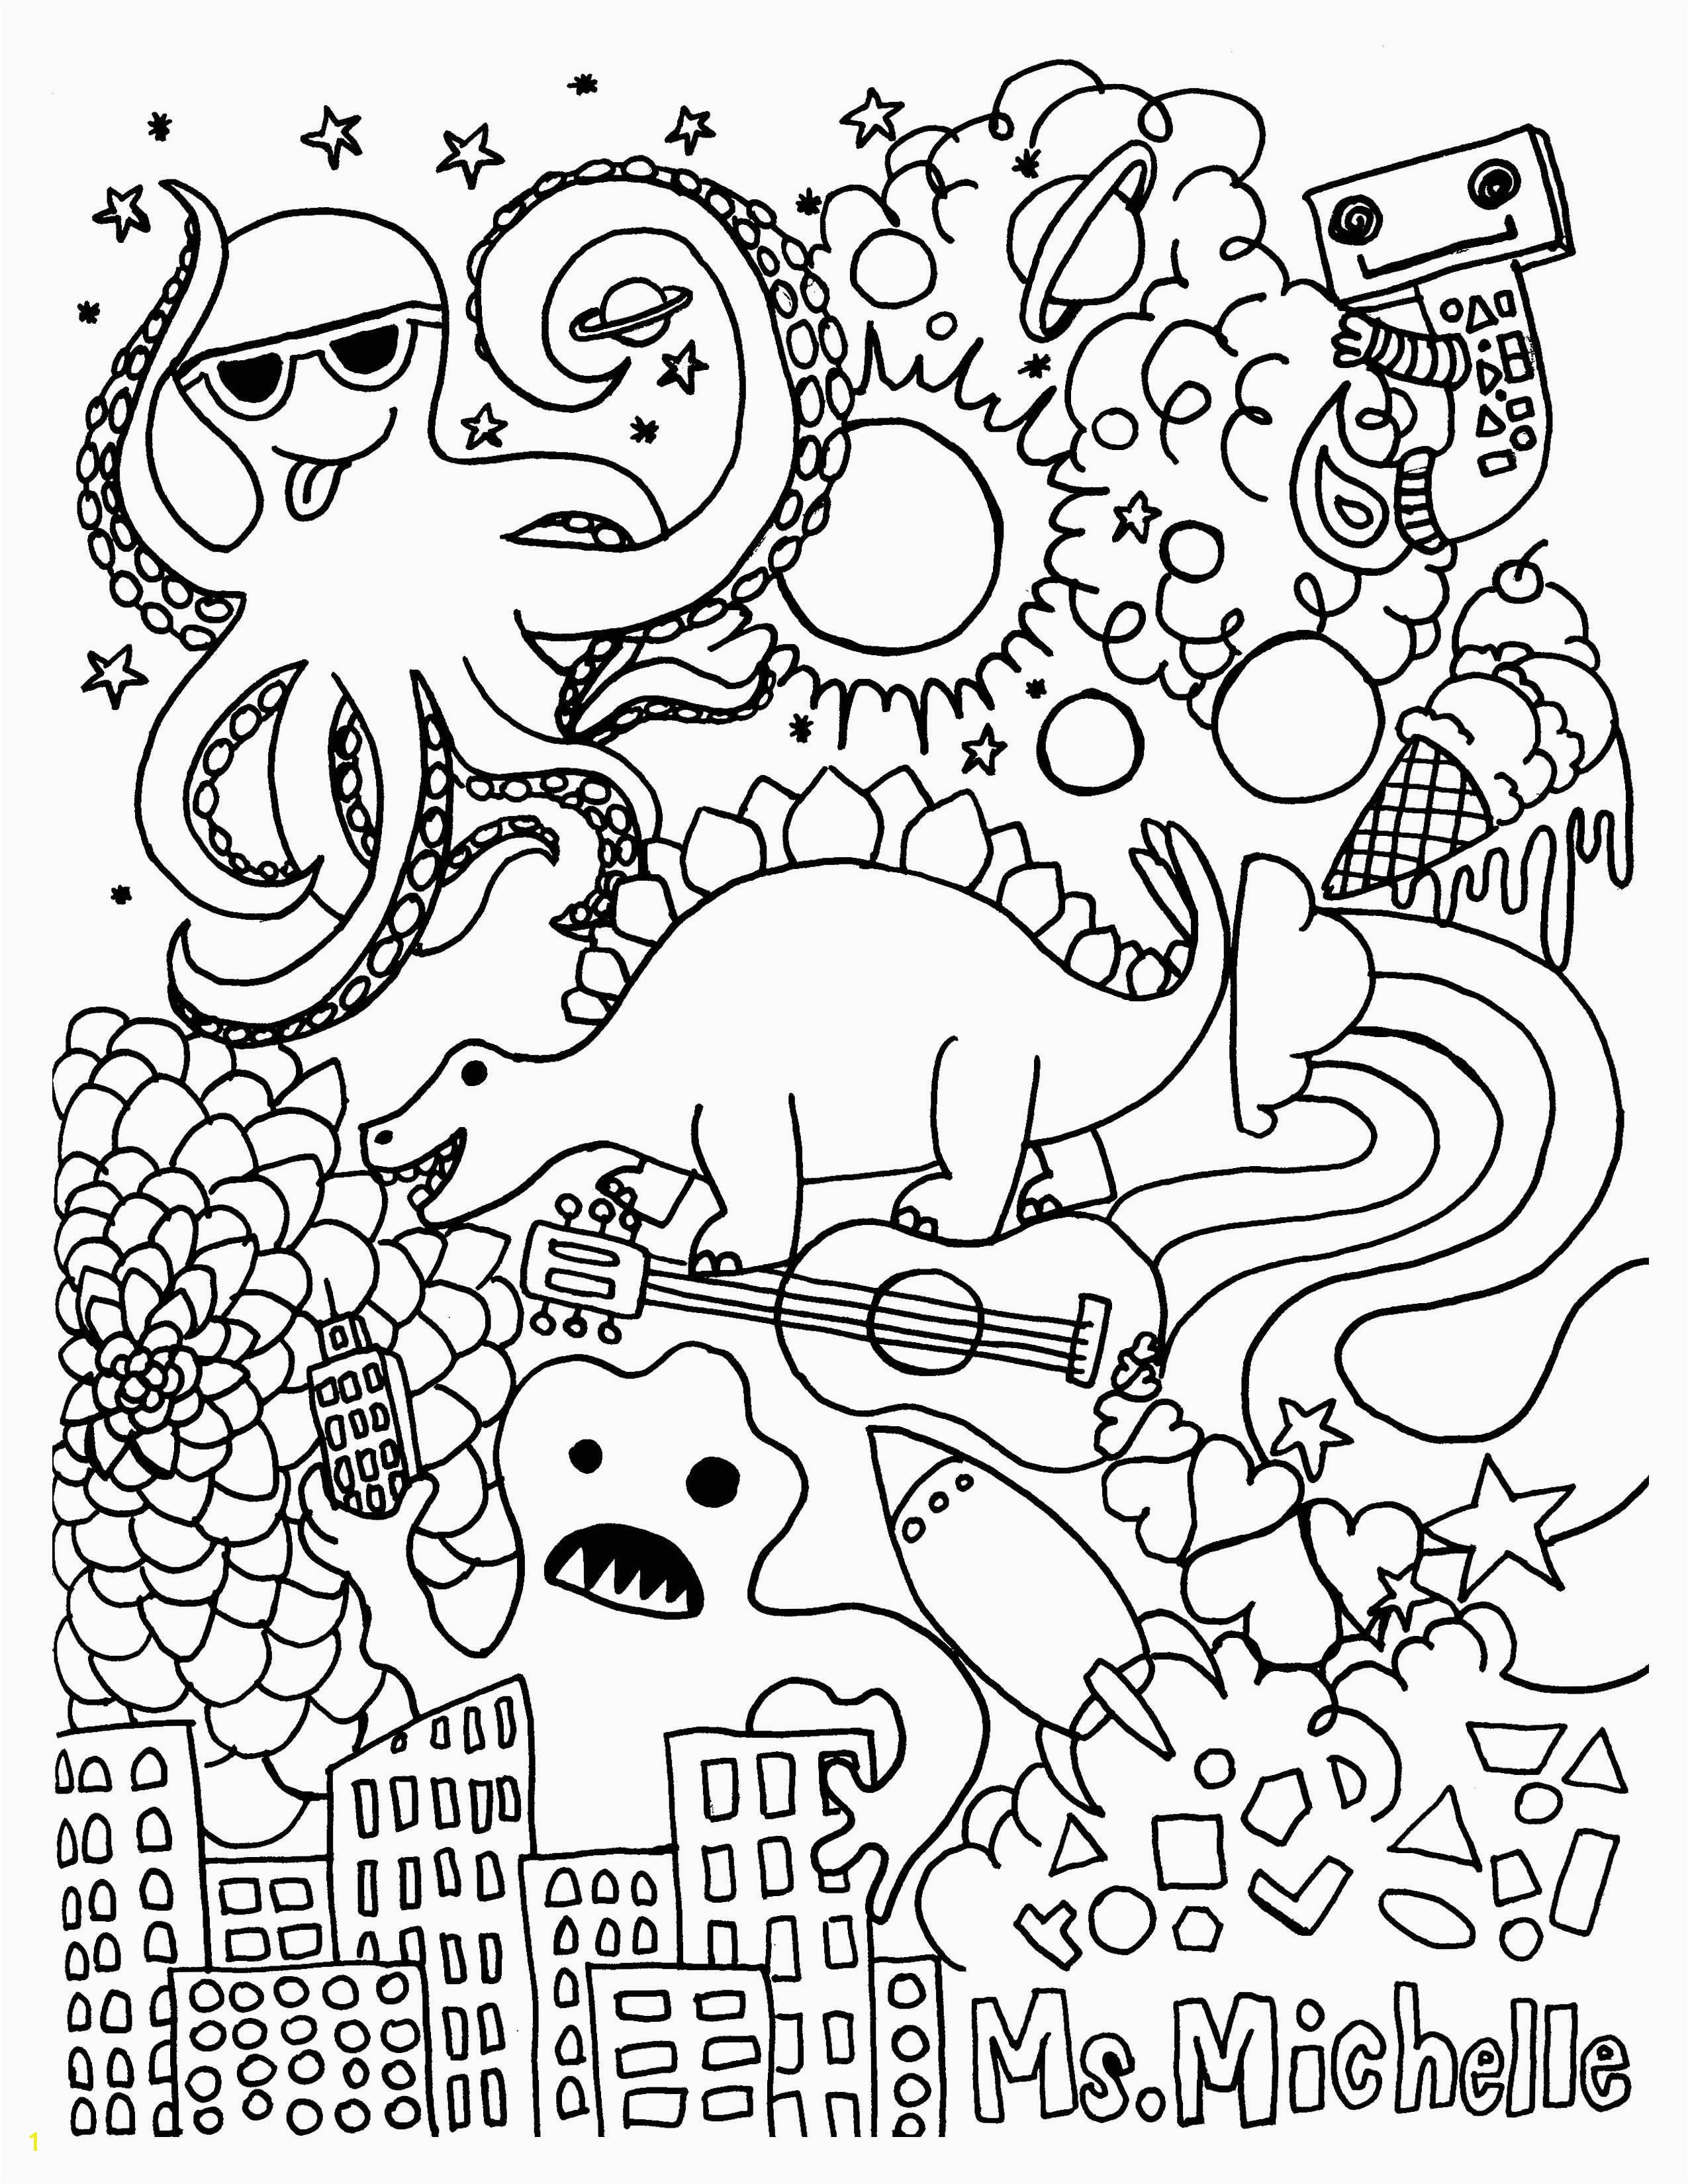 free coloring pages for girls Download-Autumn Coloring Pages Preschool 2019 Free Coloring Pages for Halloween Unique Best Coloring Page Adult Od 14-c